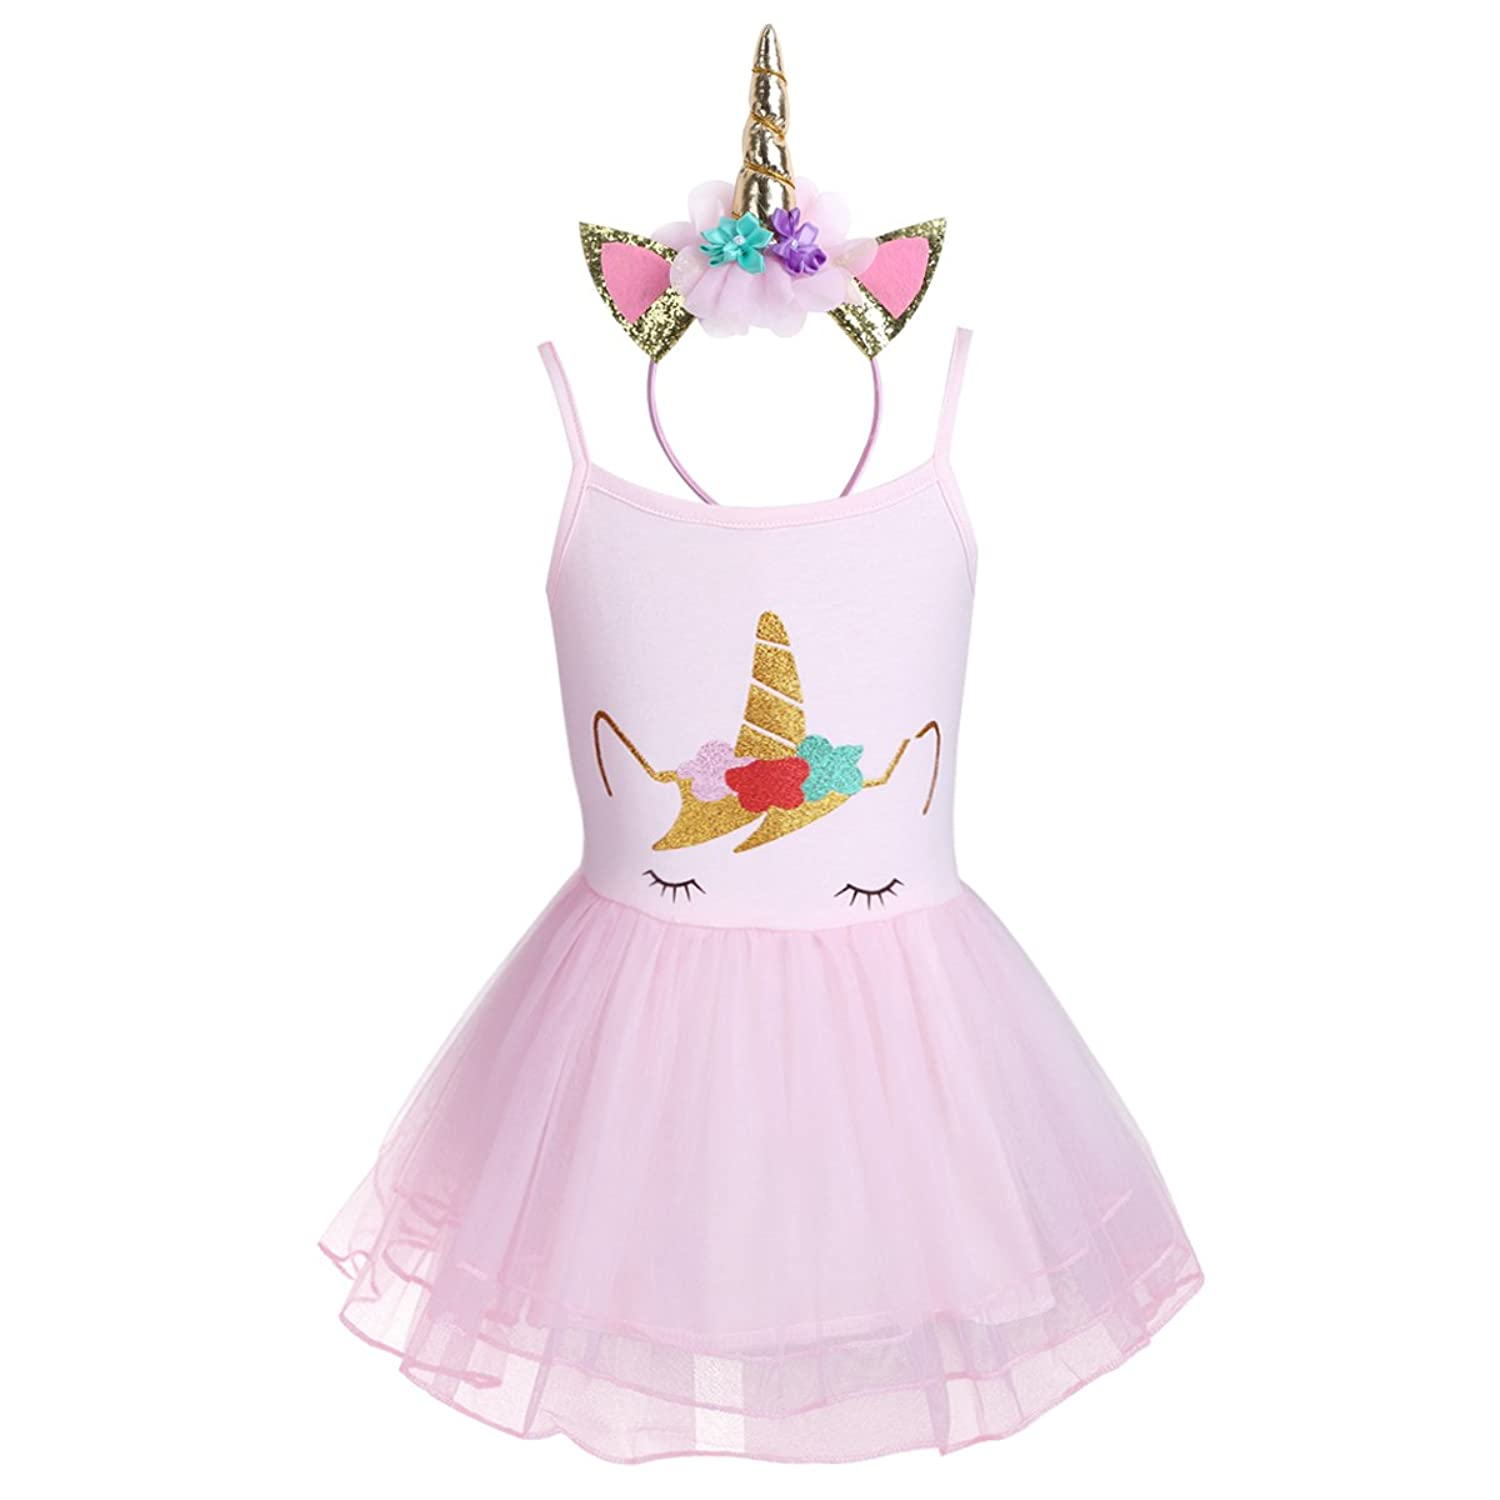 Amazon.com: iEFiEL Baby Girls Unicorn Birthday Outfit Spaghetti Straps Tutu Dress With Headband For Festival Pageant Party Costume: Clothing